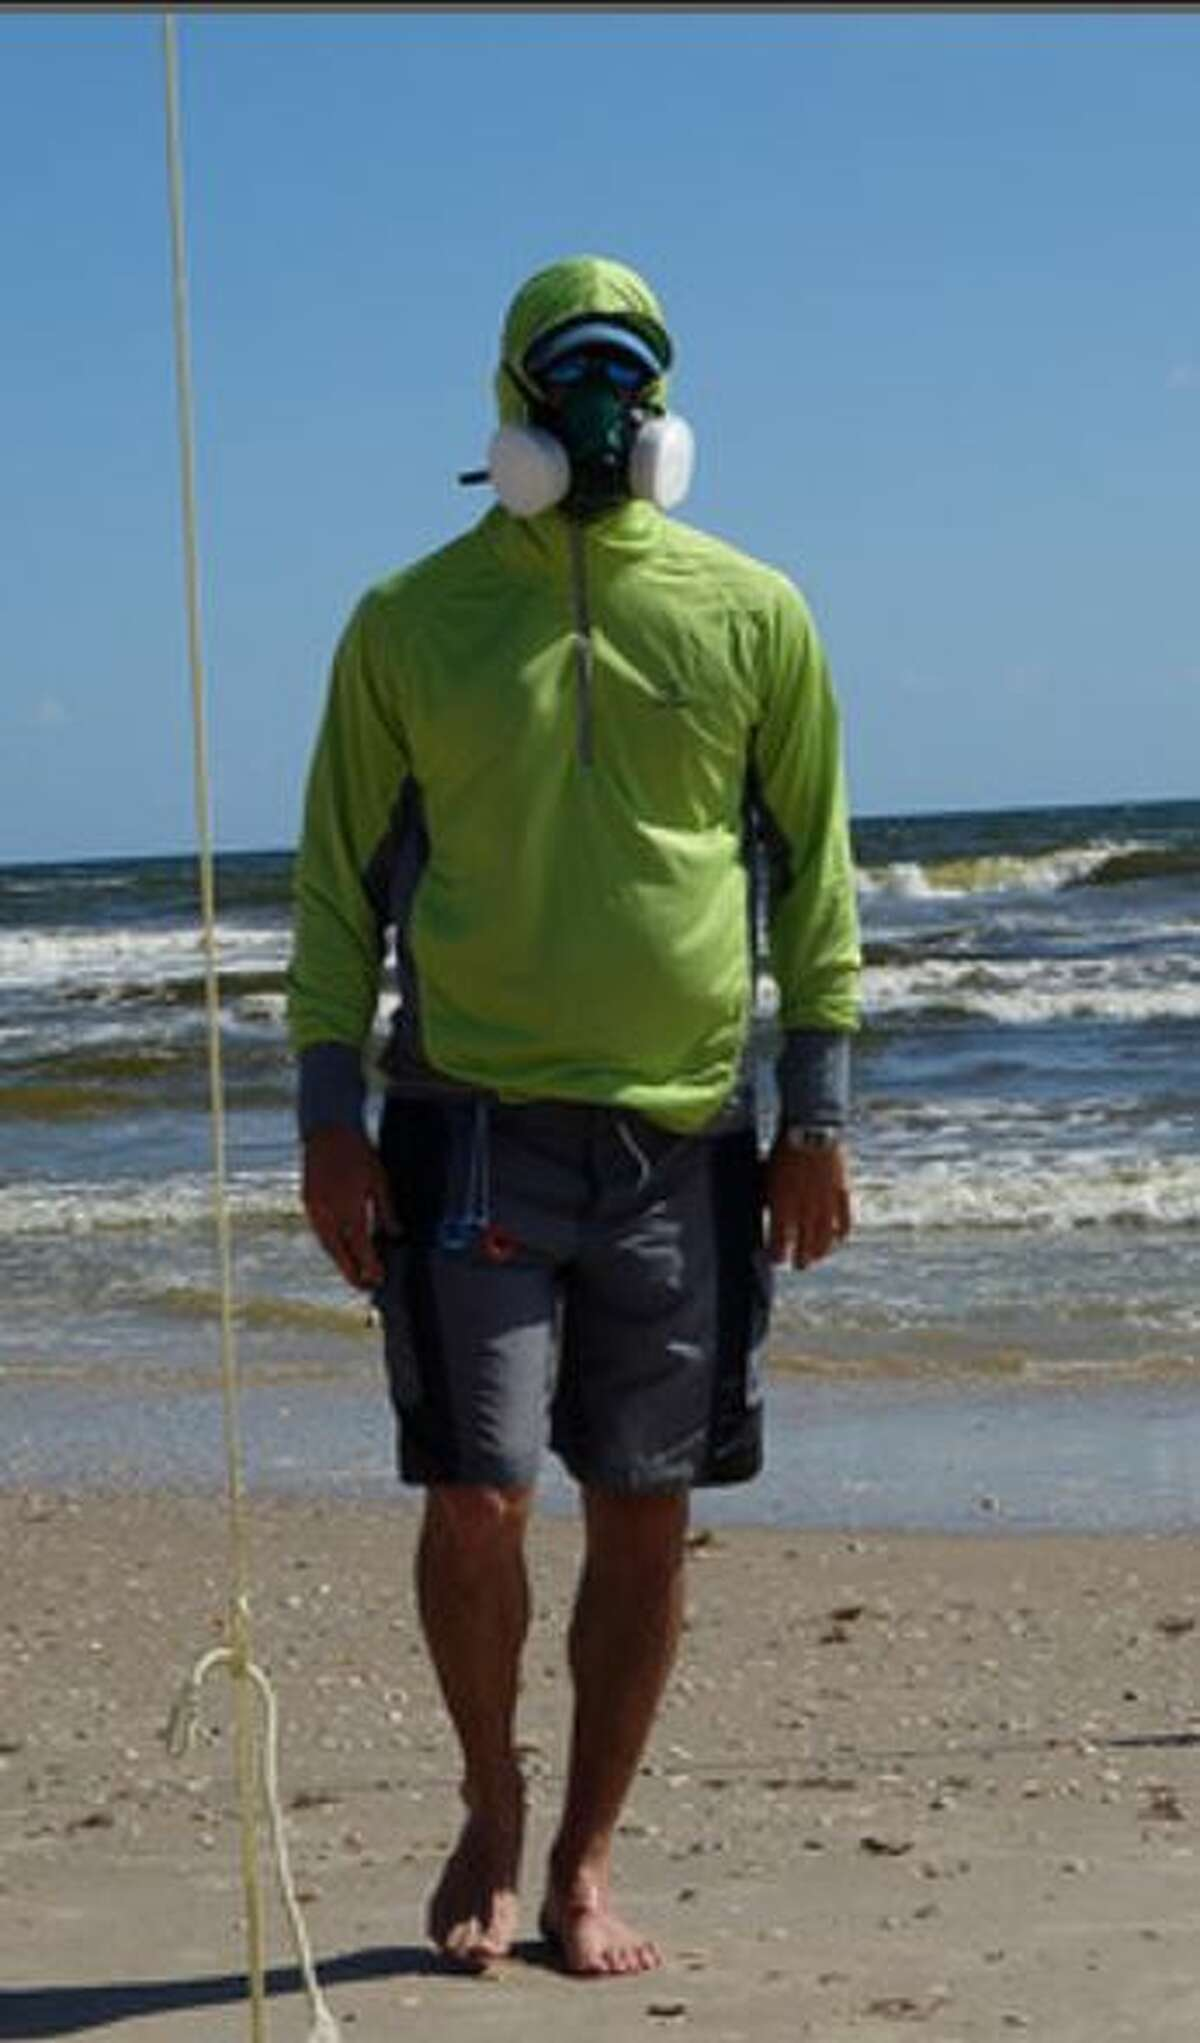 Duke Washmon and his fishing team spend six months prepping for the Sharkathon competition.